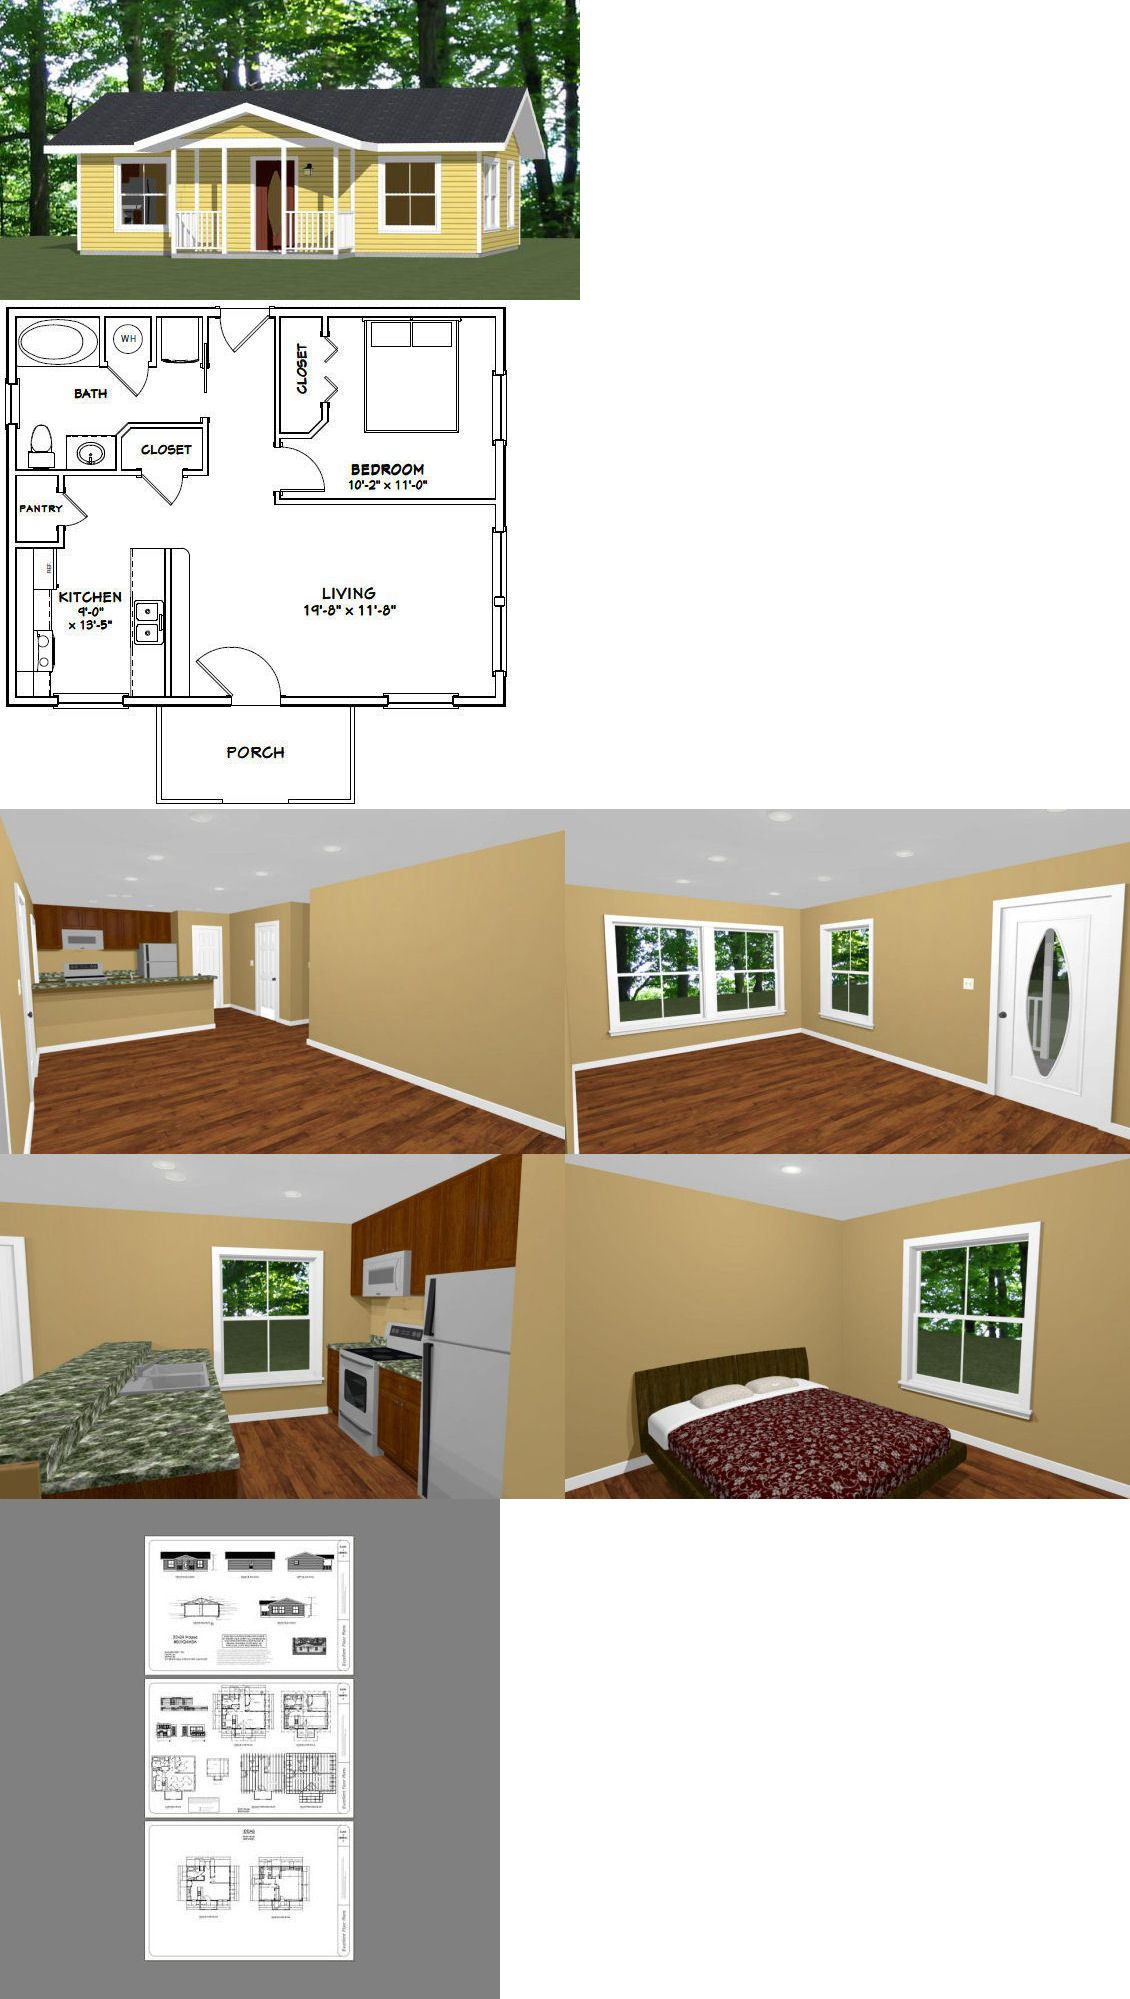 Building plans and blueprints  house bedroom bath also rh in pinterest